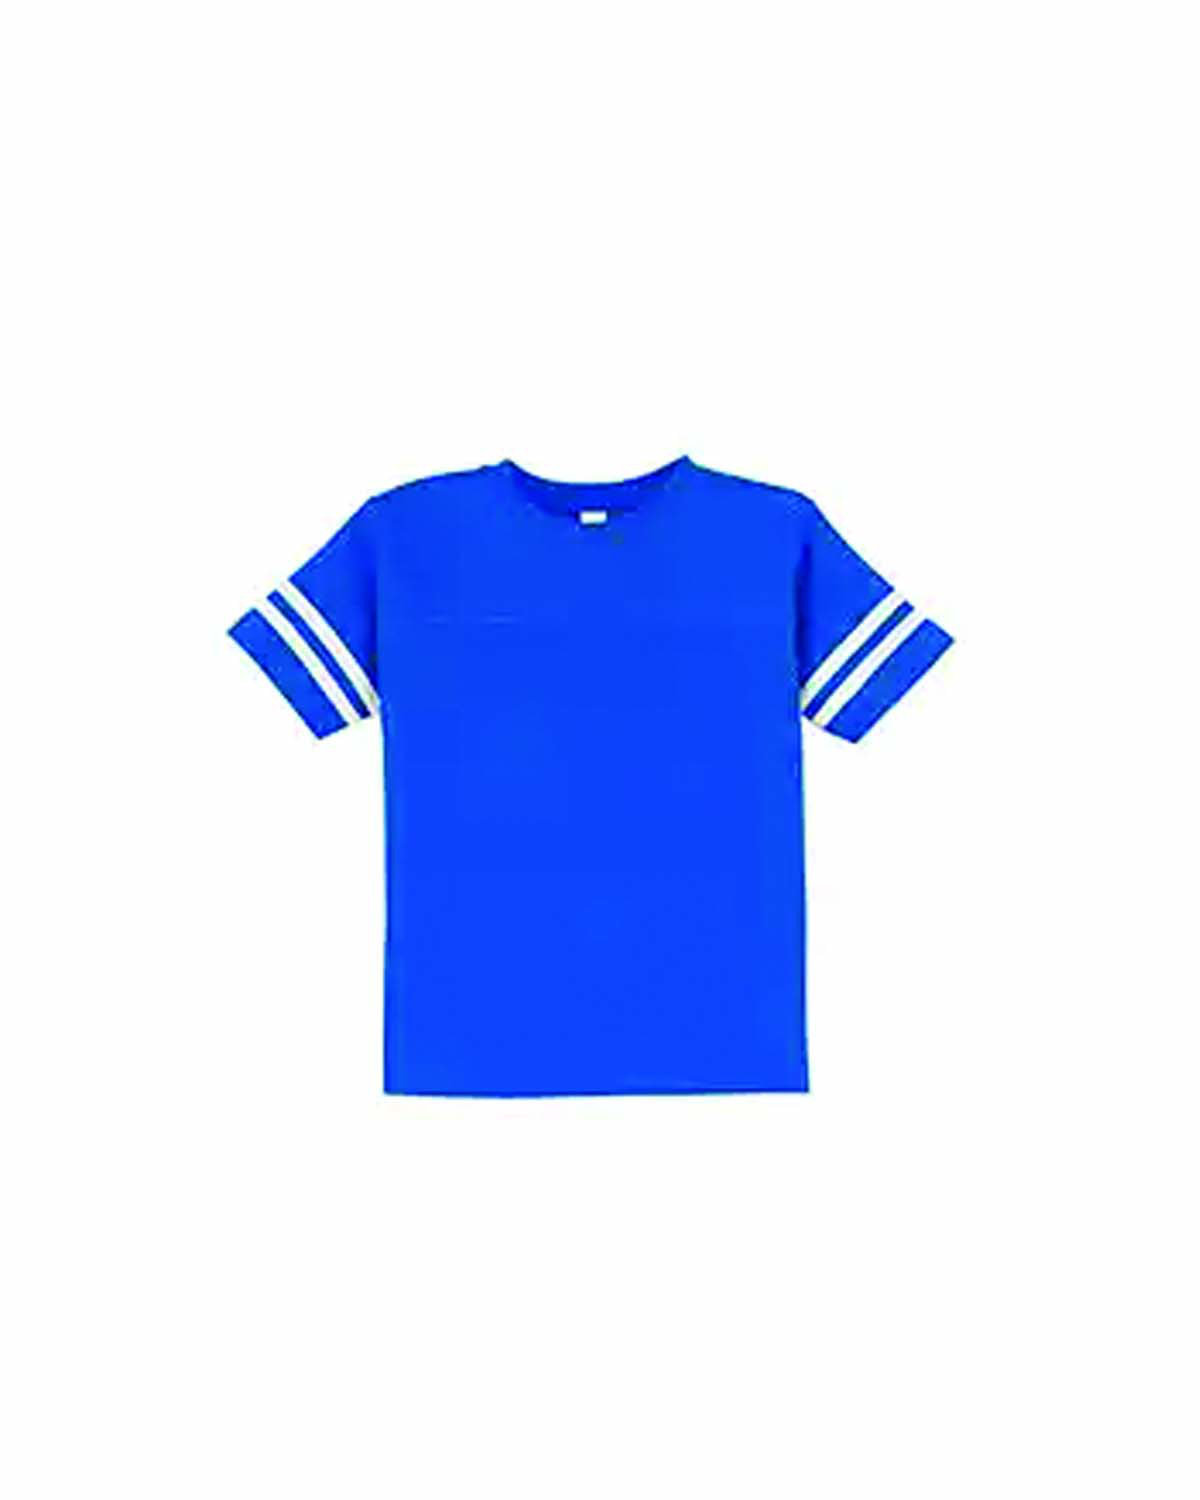 hot sale online 3d2b4 bb562 Royal Toddler Football Jersey | popimages